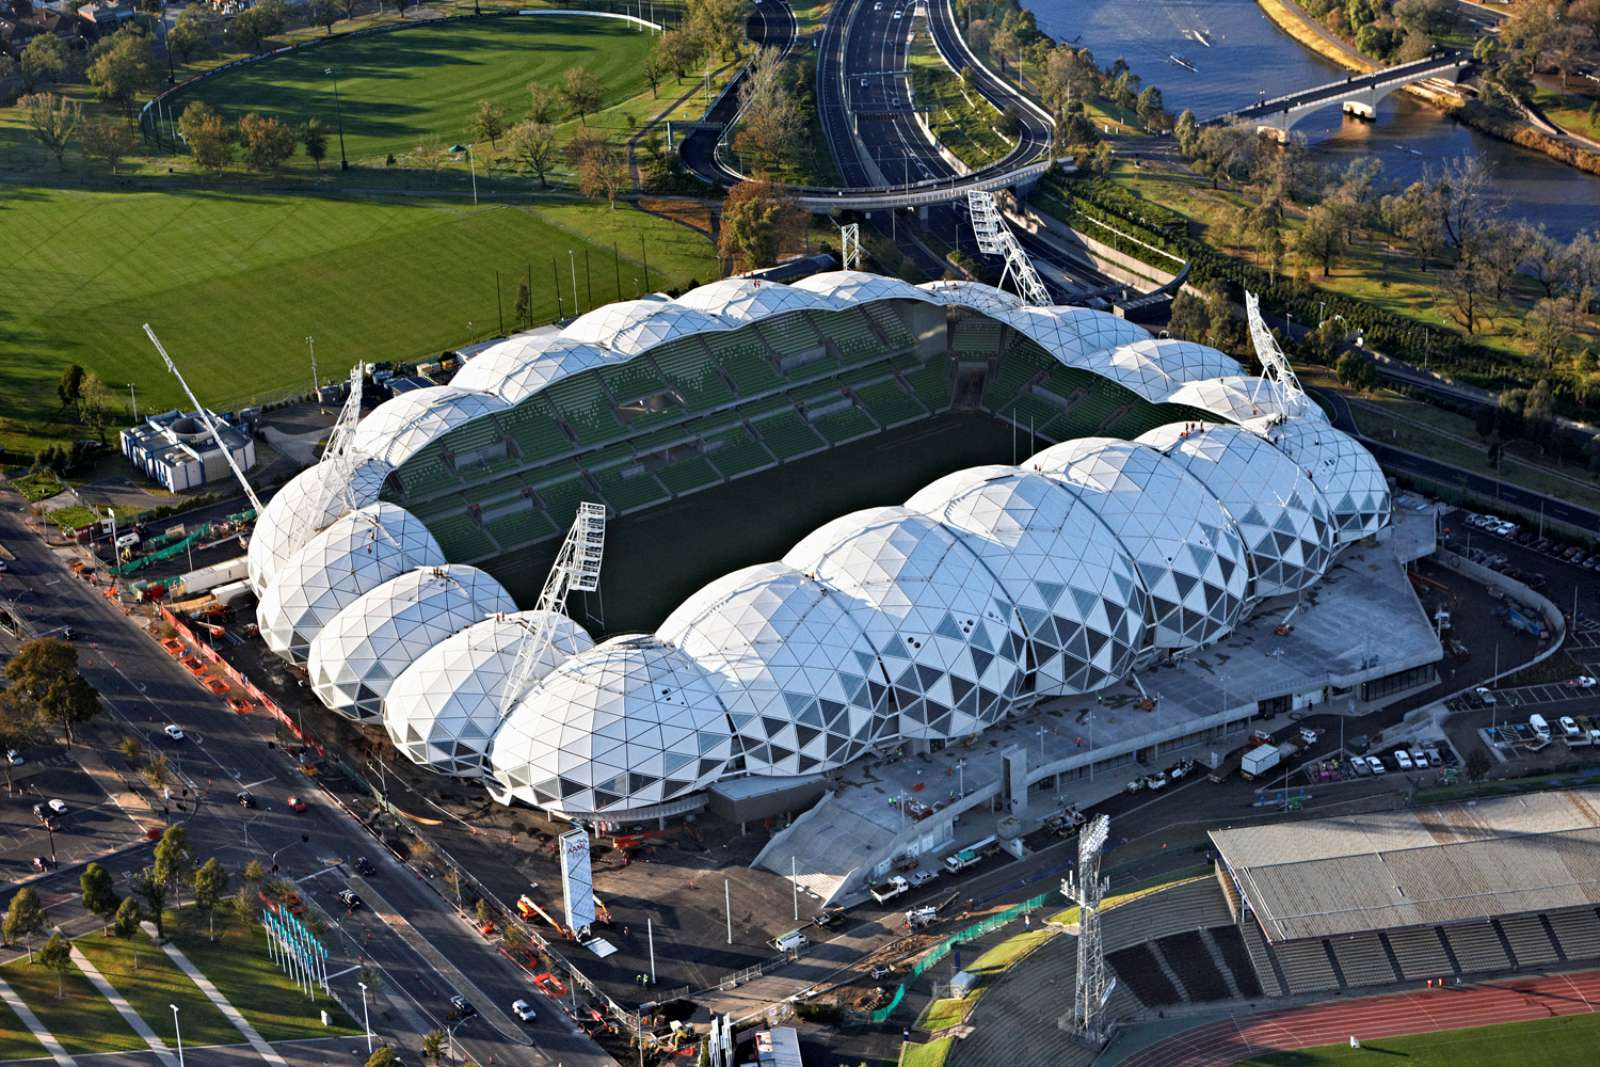 Melbourne Rectangular Stadium AAMI Park